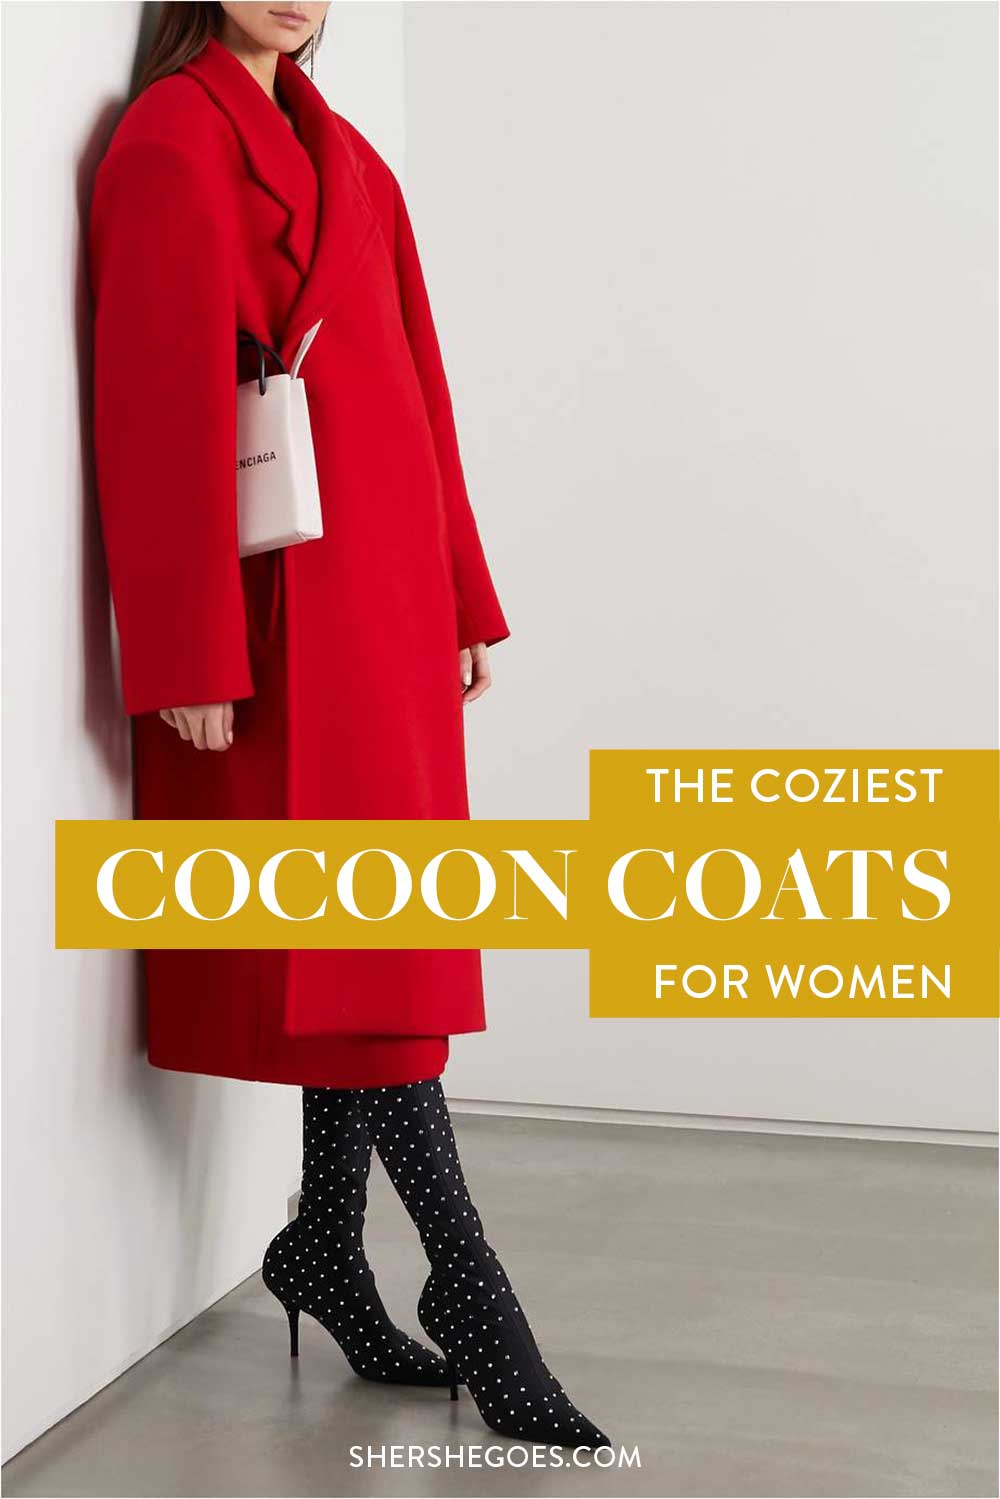 what-is-a-cocon-coat